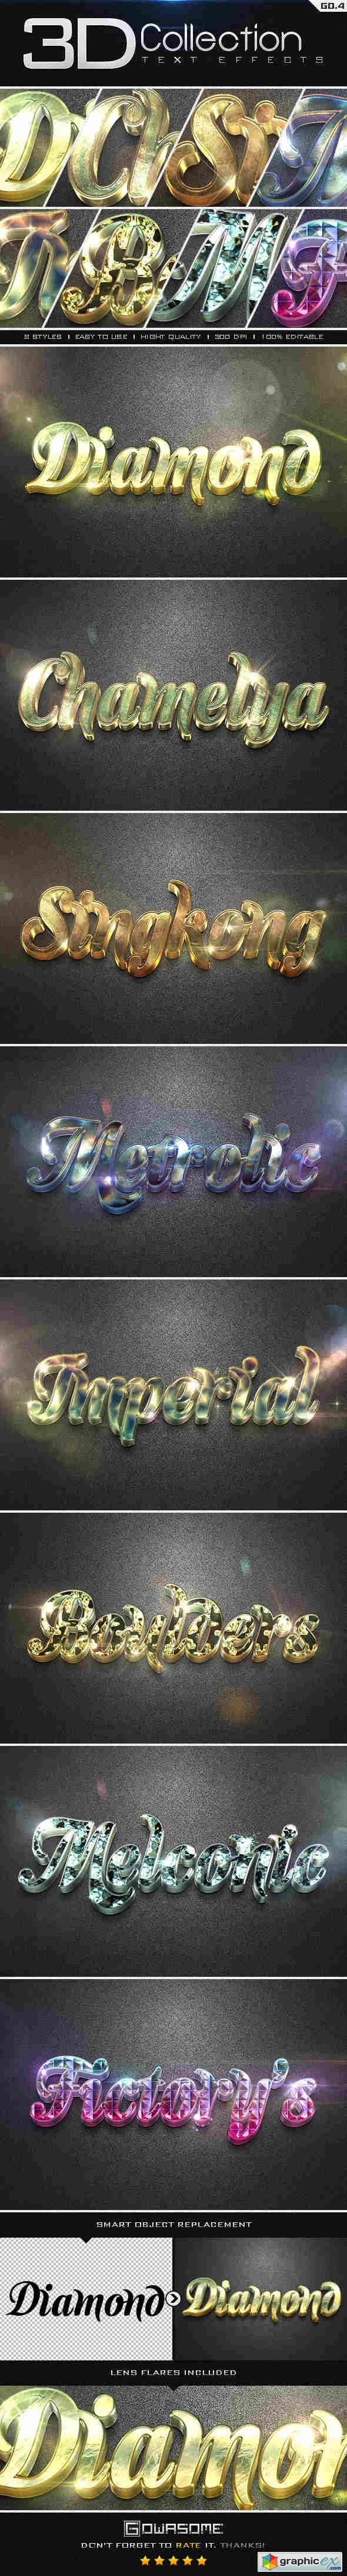 3D Collection Text Effects GO.4  8908225